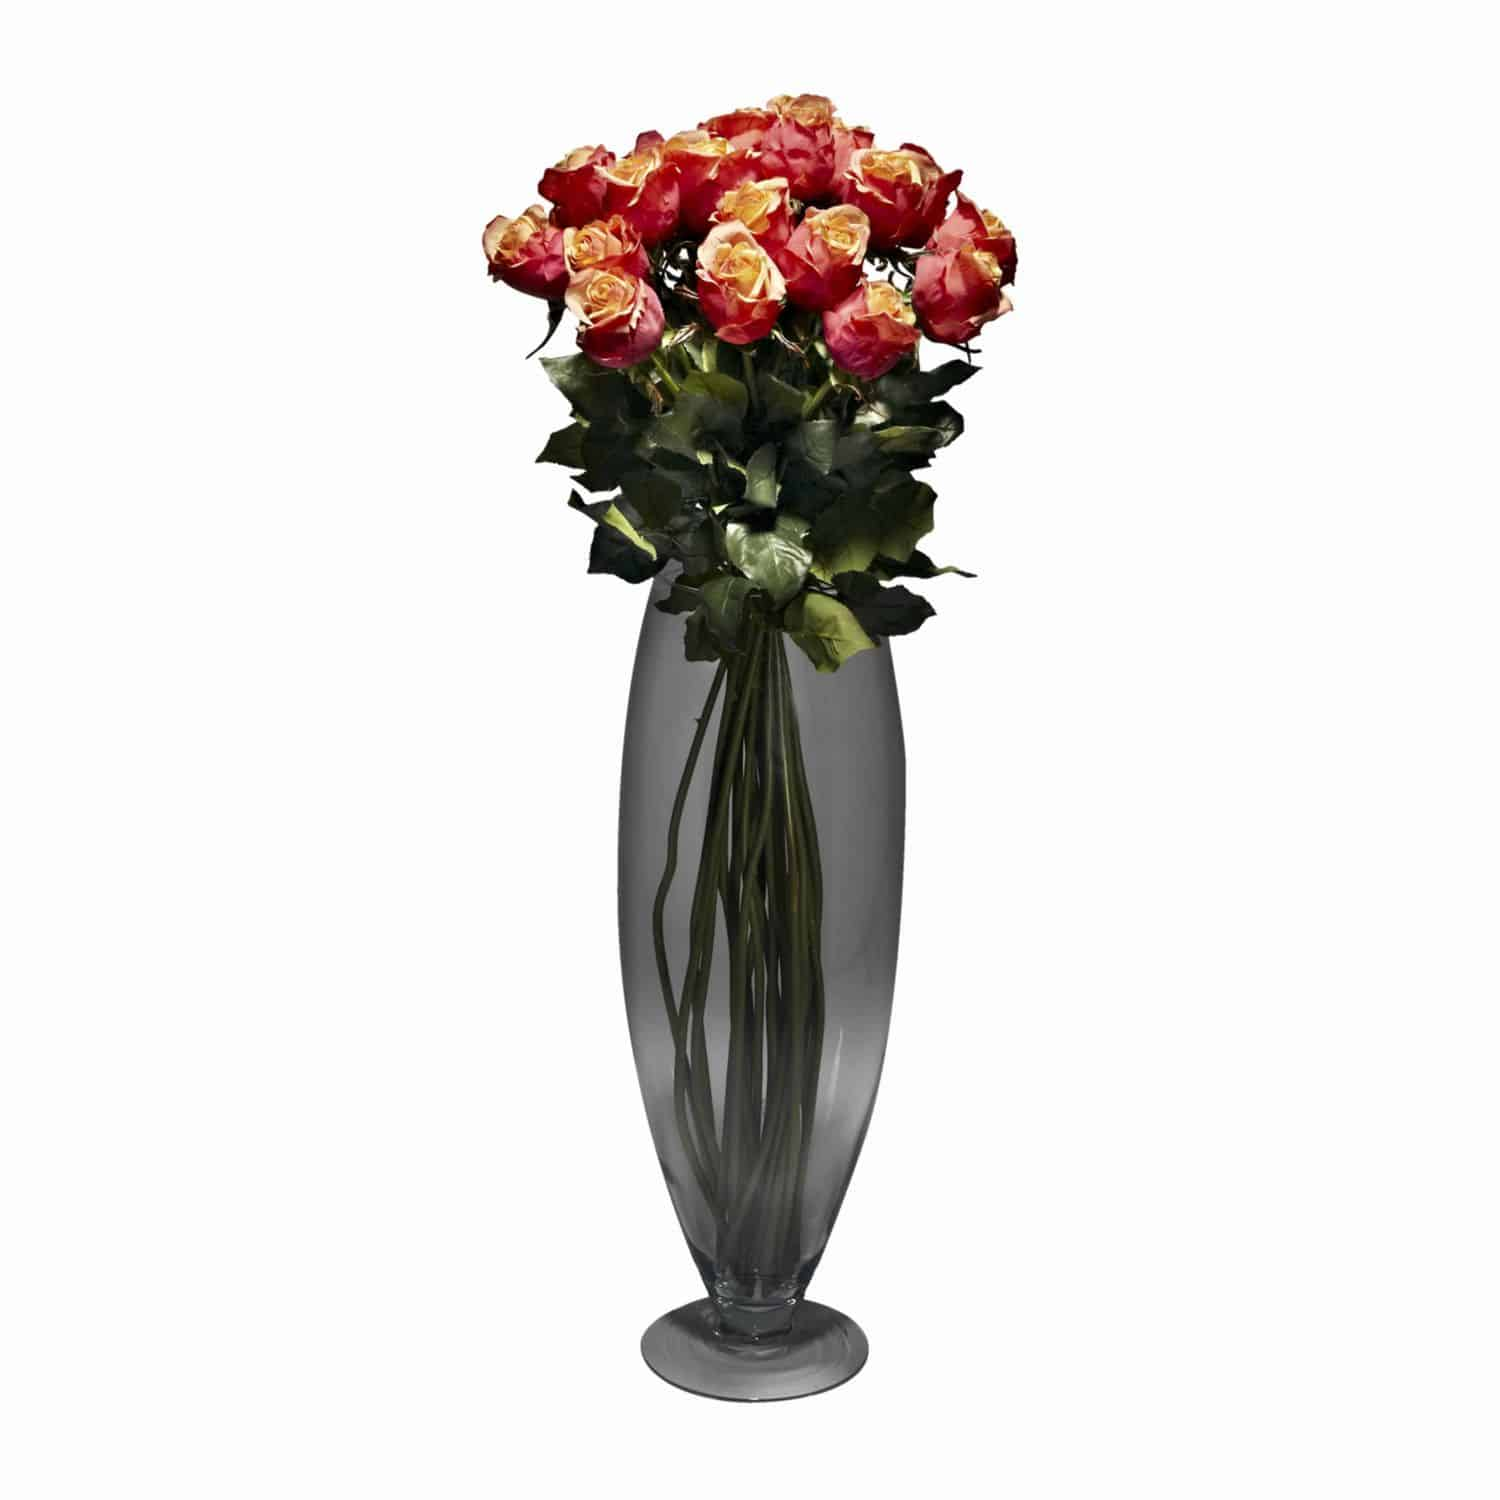 Shop for our simply captivating arrangement of 24 long stem artificial silk cherry brandy rose flowers. A modern design perfect for any contemporary space.